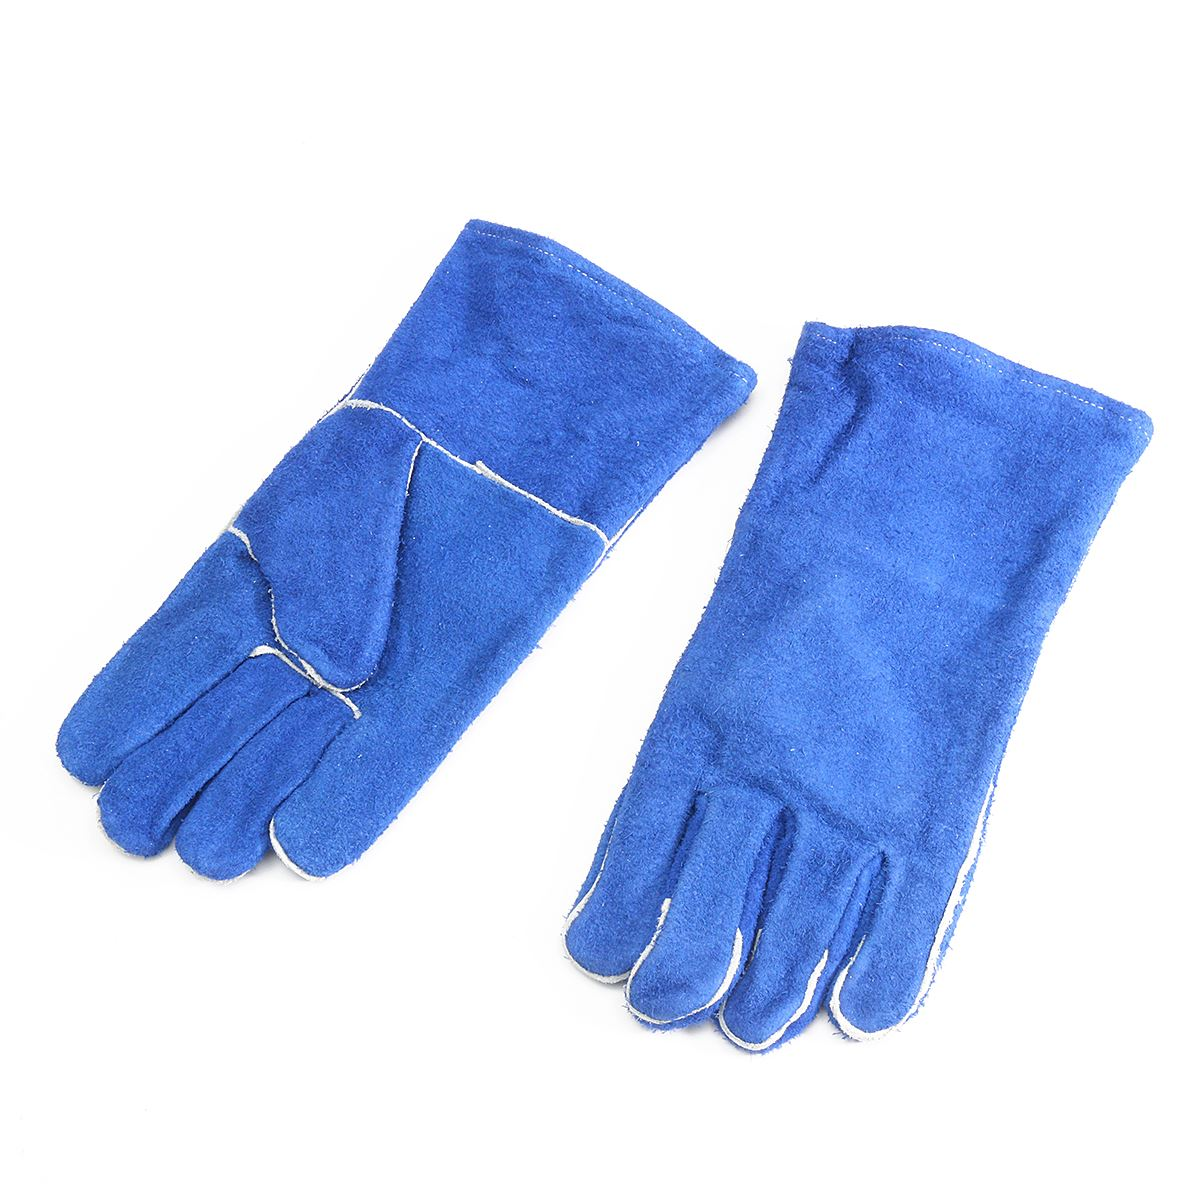 Blue Woodburner Gloves Long Lined Welders Gauntlets Log Fire High Temp Stove  XL Workplace Safety Gloves-in Safety Gloves from Security & Protection on  ... - Blue Woodburner Gloves Long Lined Welders Gauntlets Log Fire High